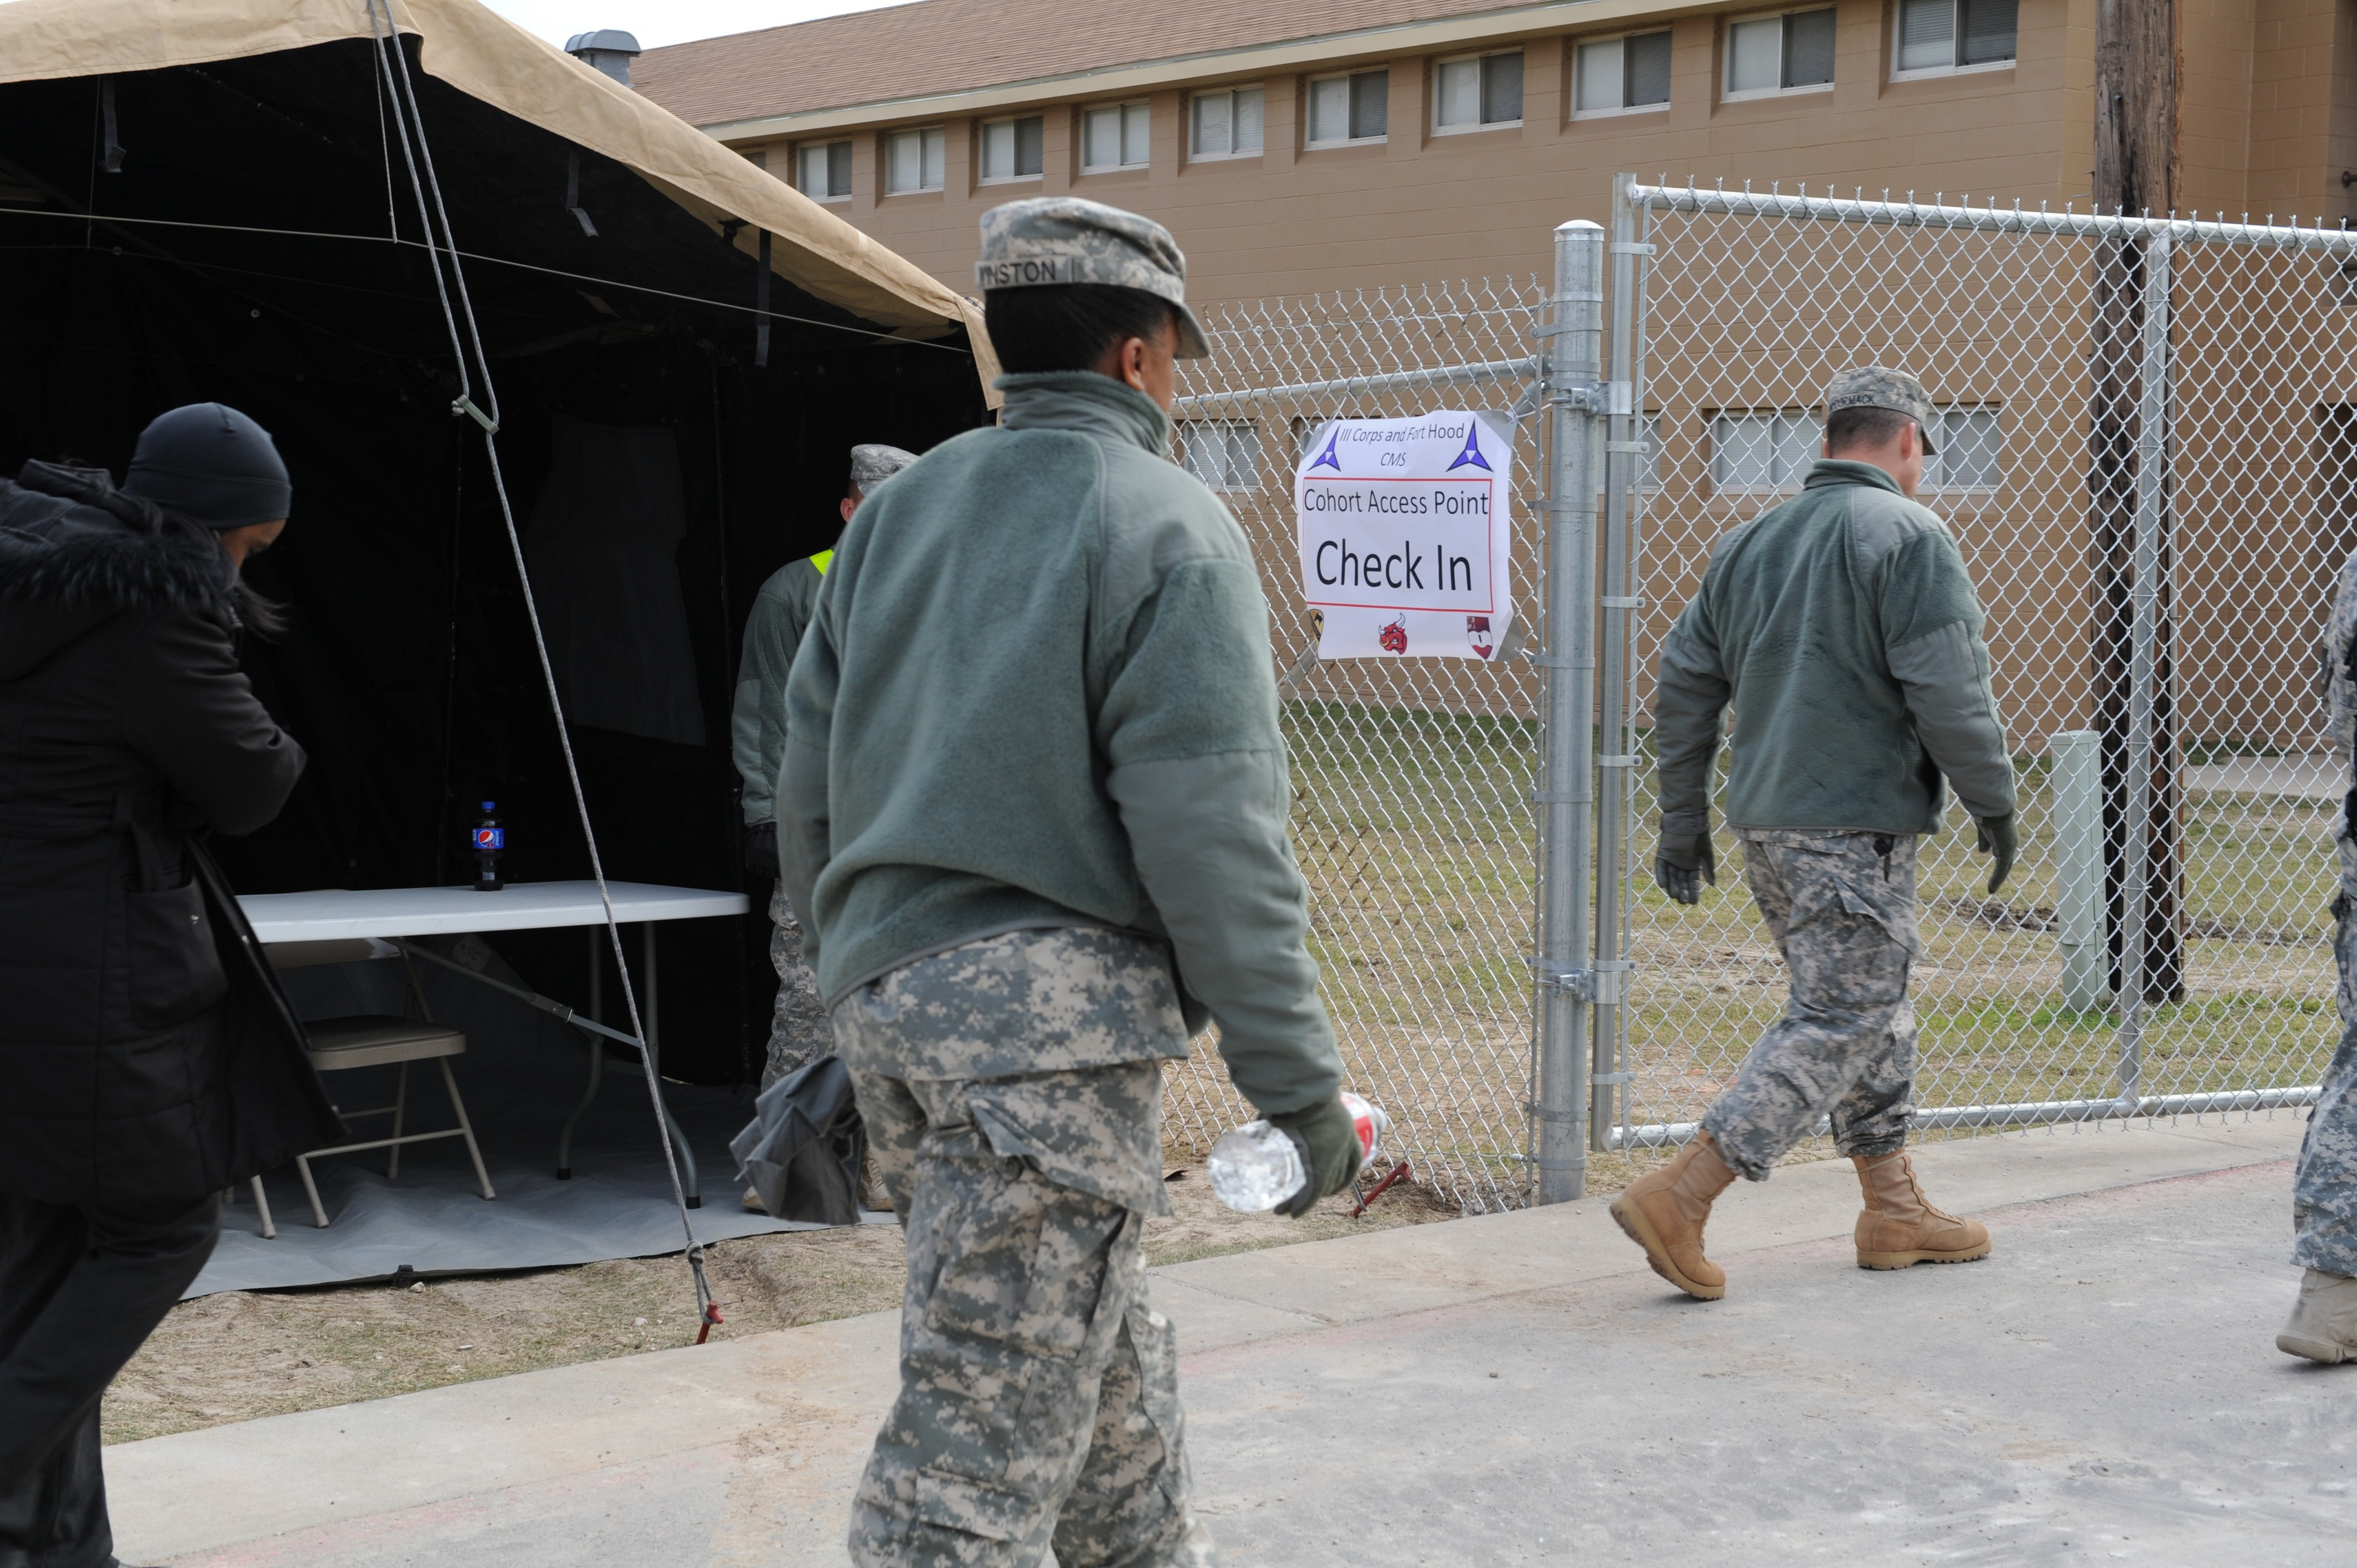 North Fort Hood Monitoring Area Reaches Operational